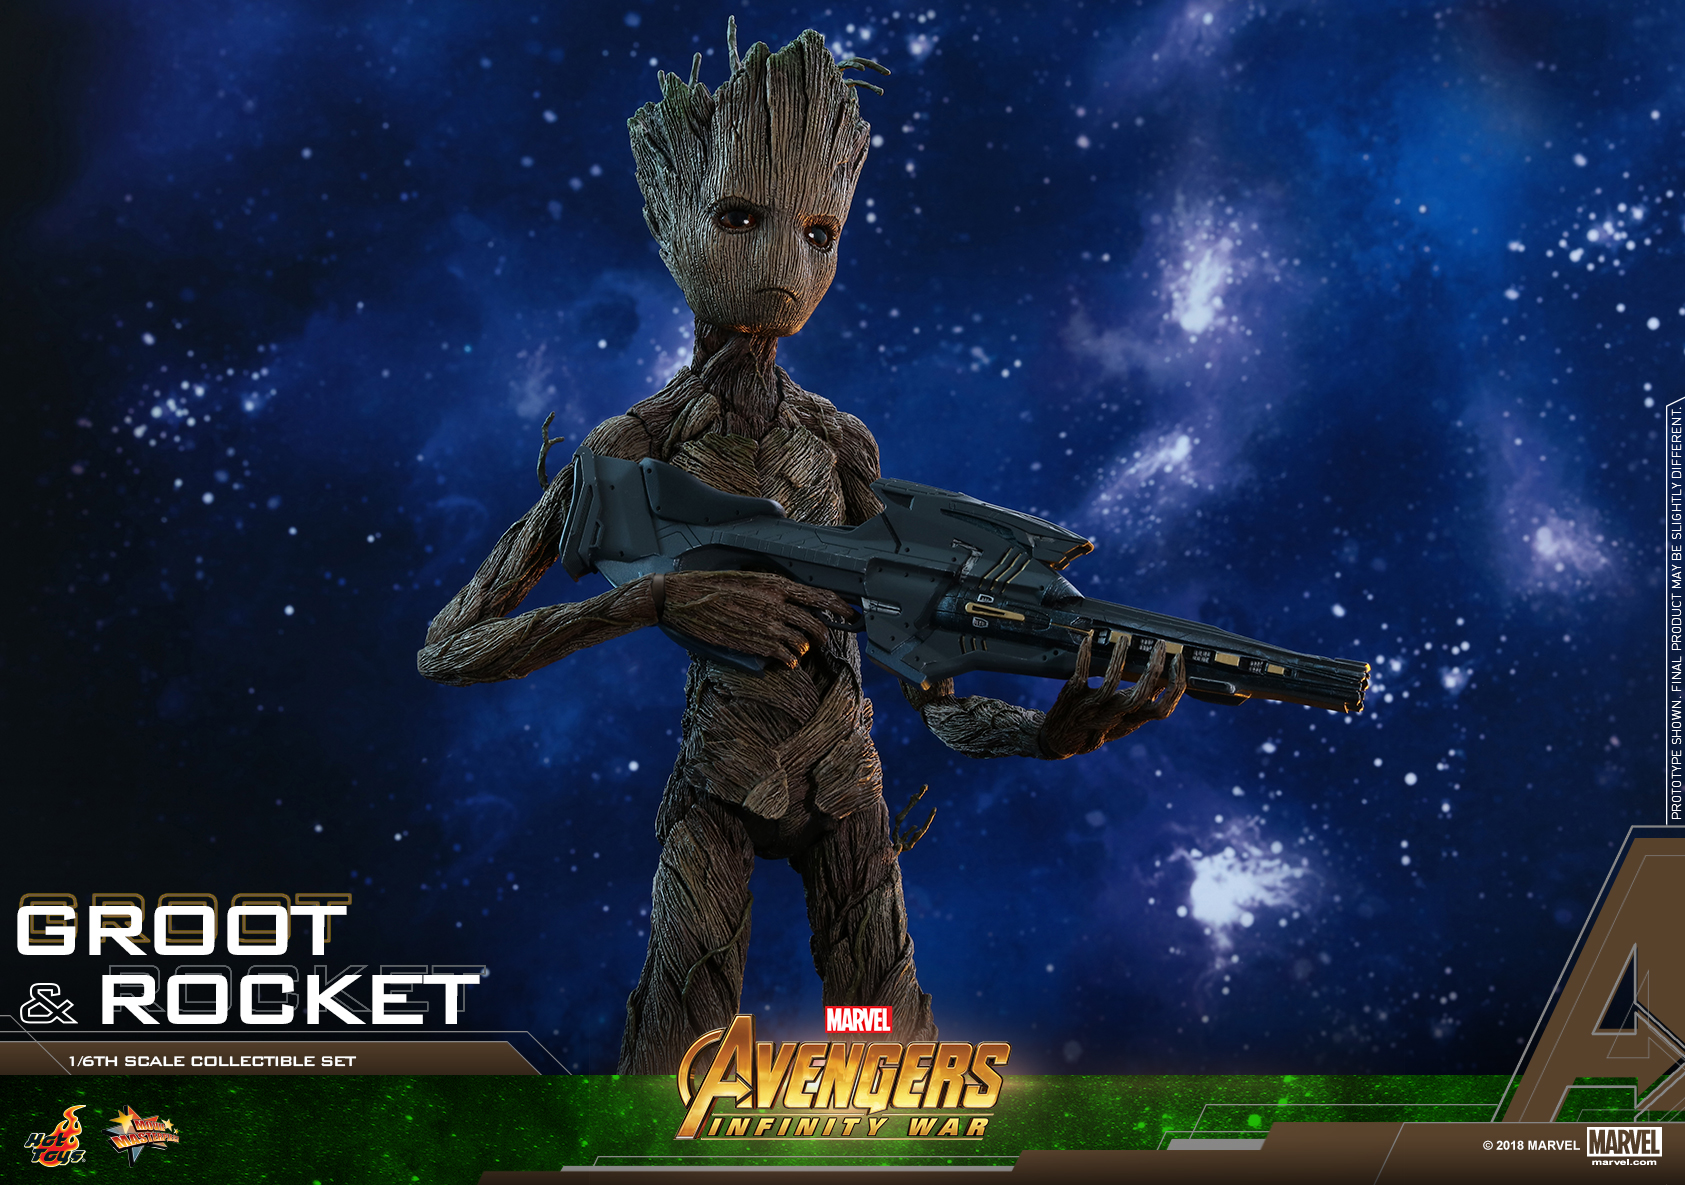 Hot Toys - AIW - Groot & Rocket collectible set_PR20